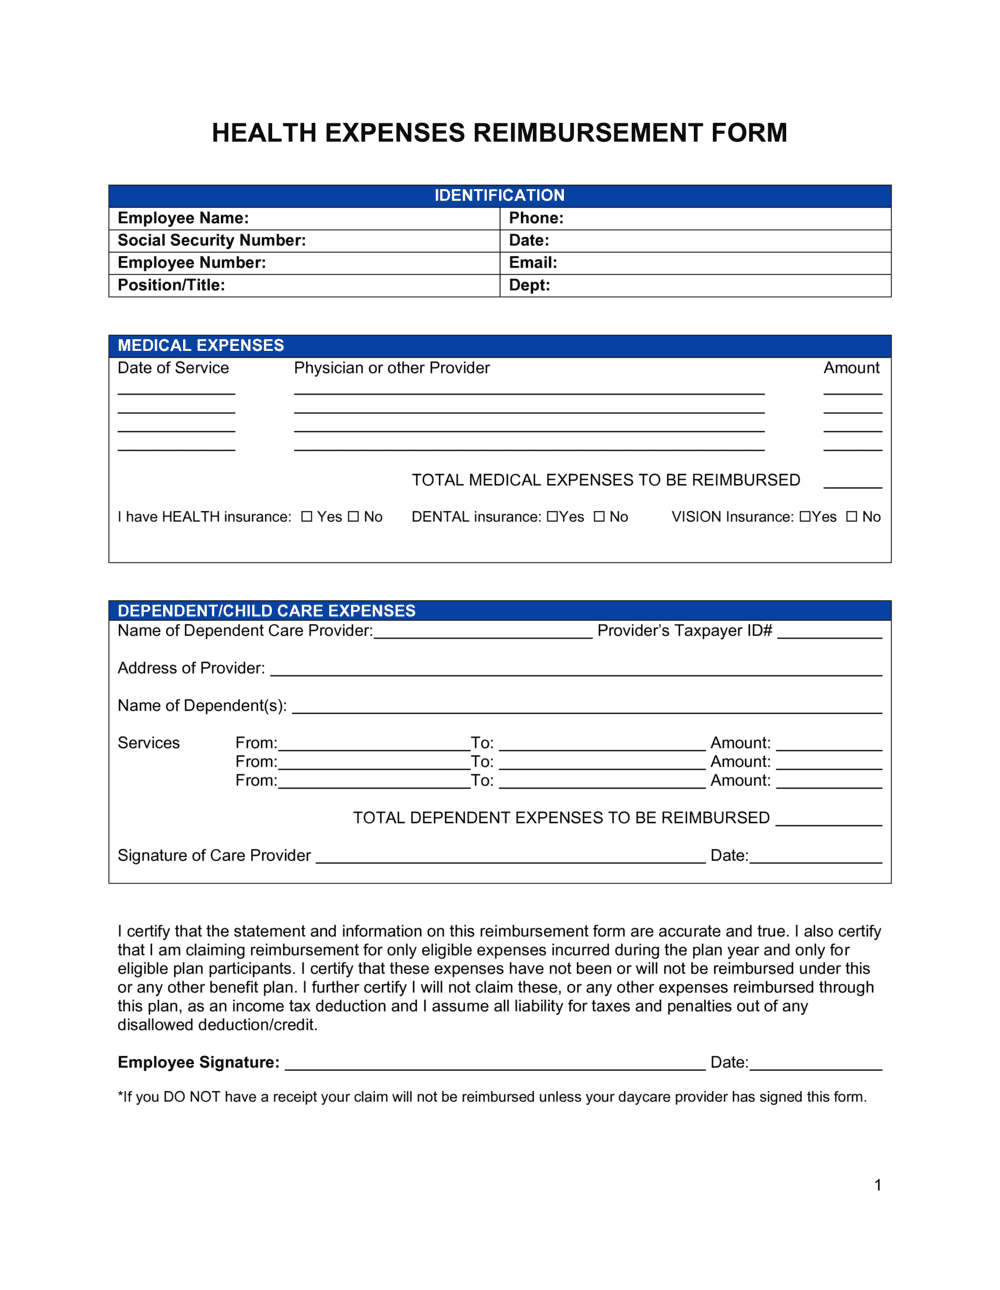 Business-in-a-Box's Reimbursement Form Medical Expenses Template